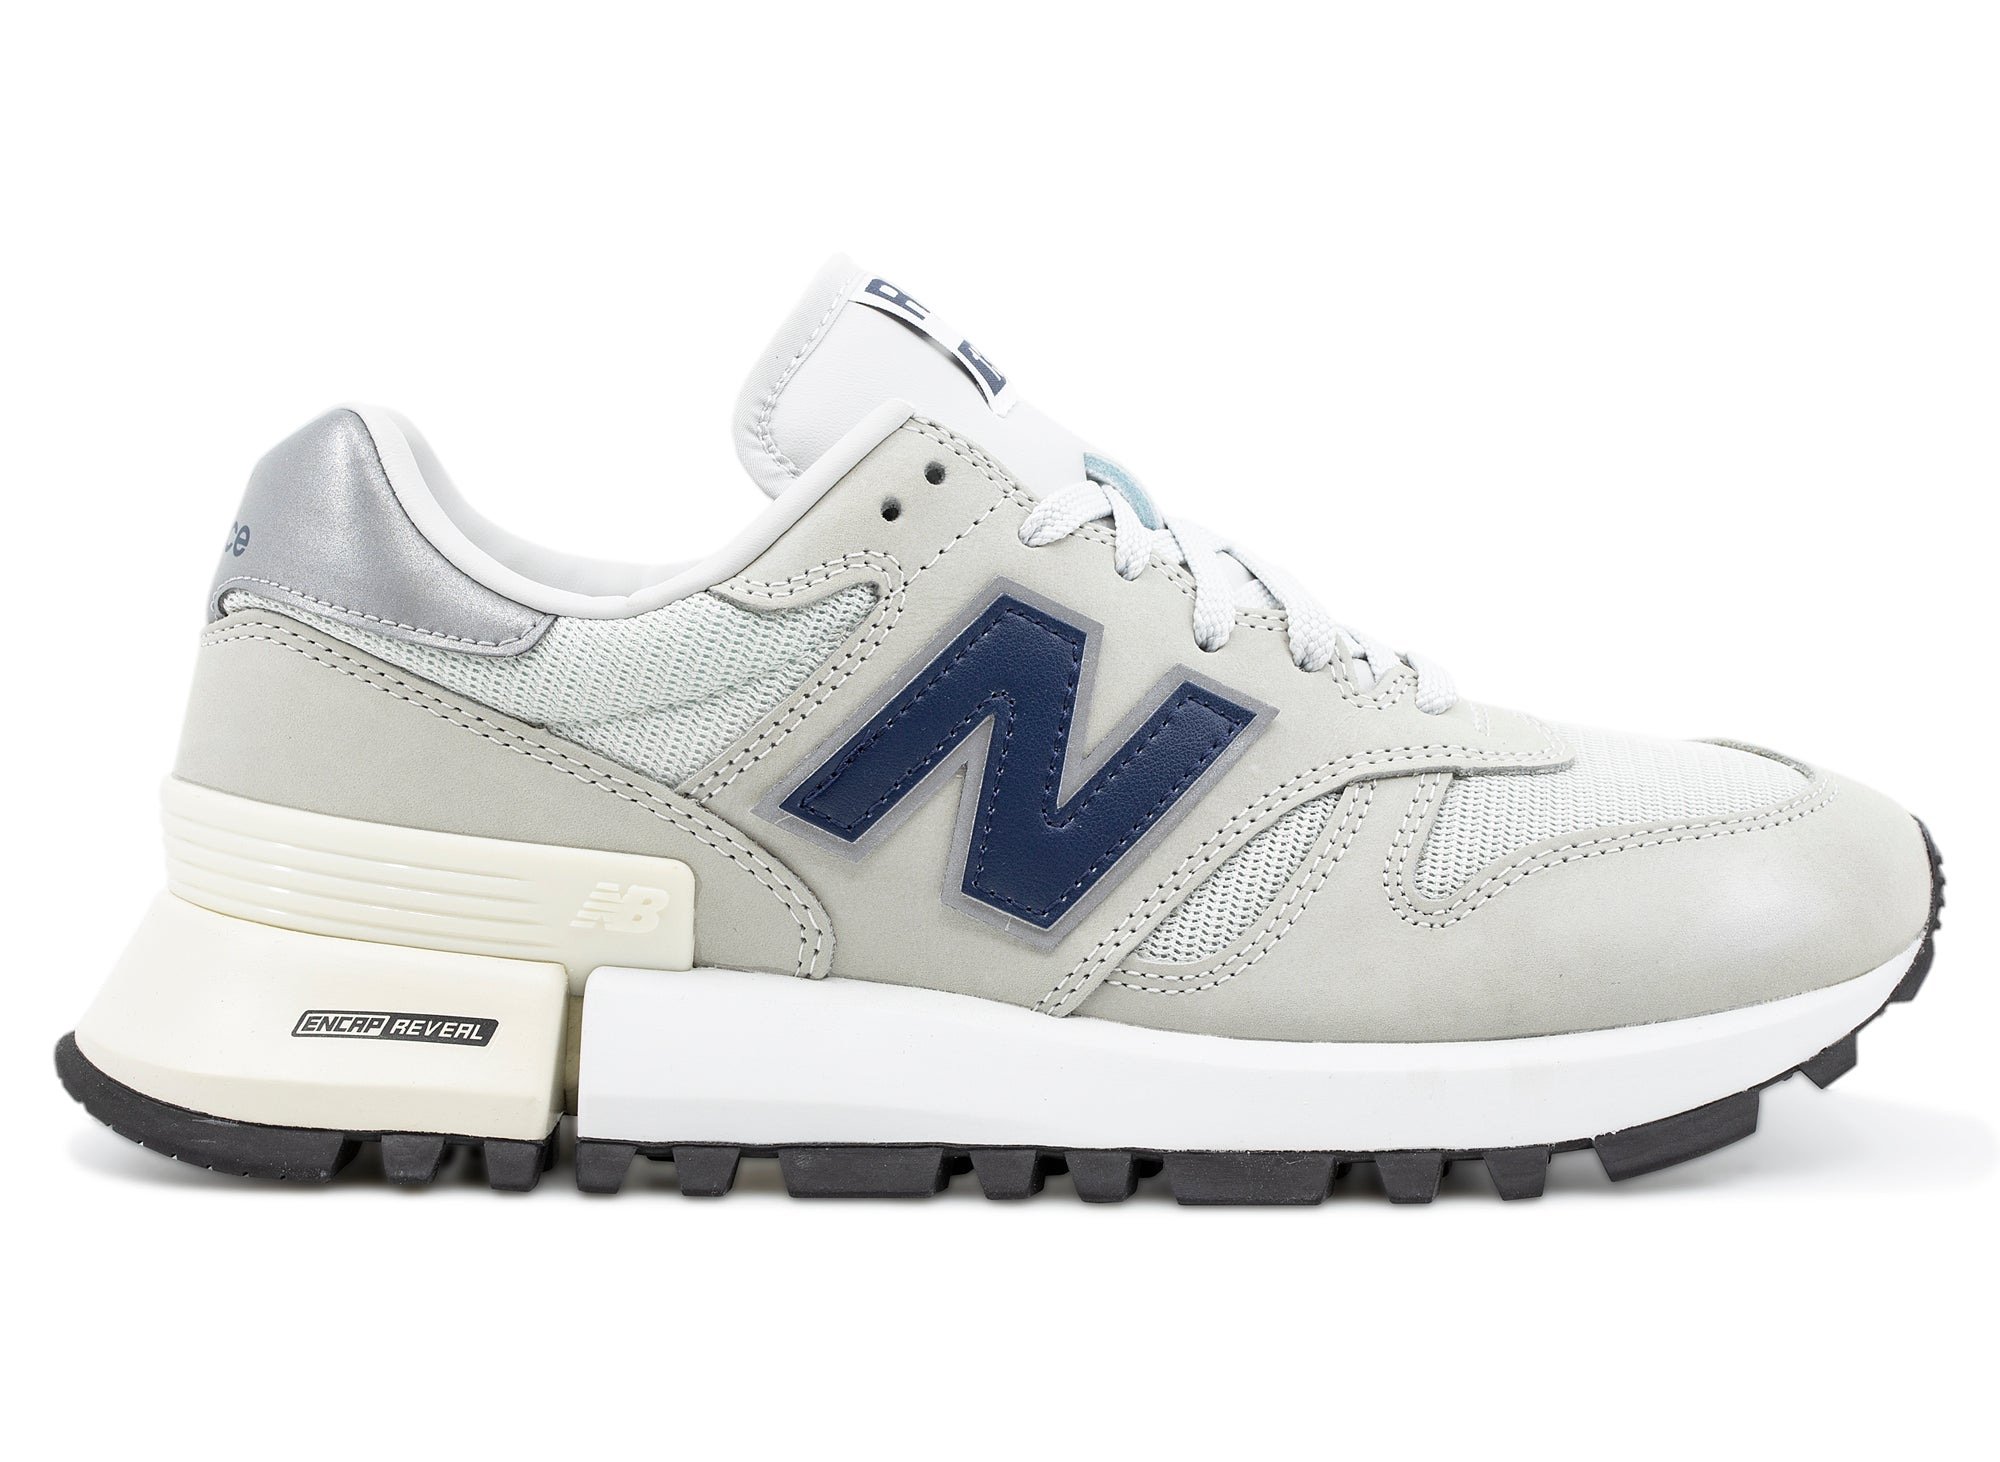 New Balance MS1300TH 'Summer Fog'